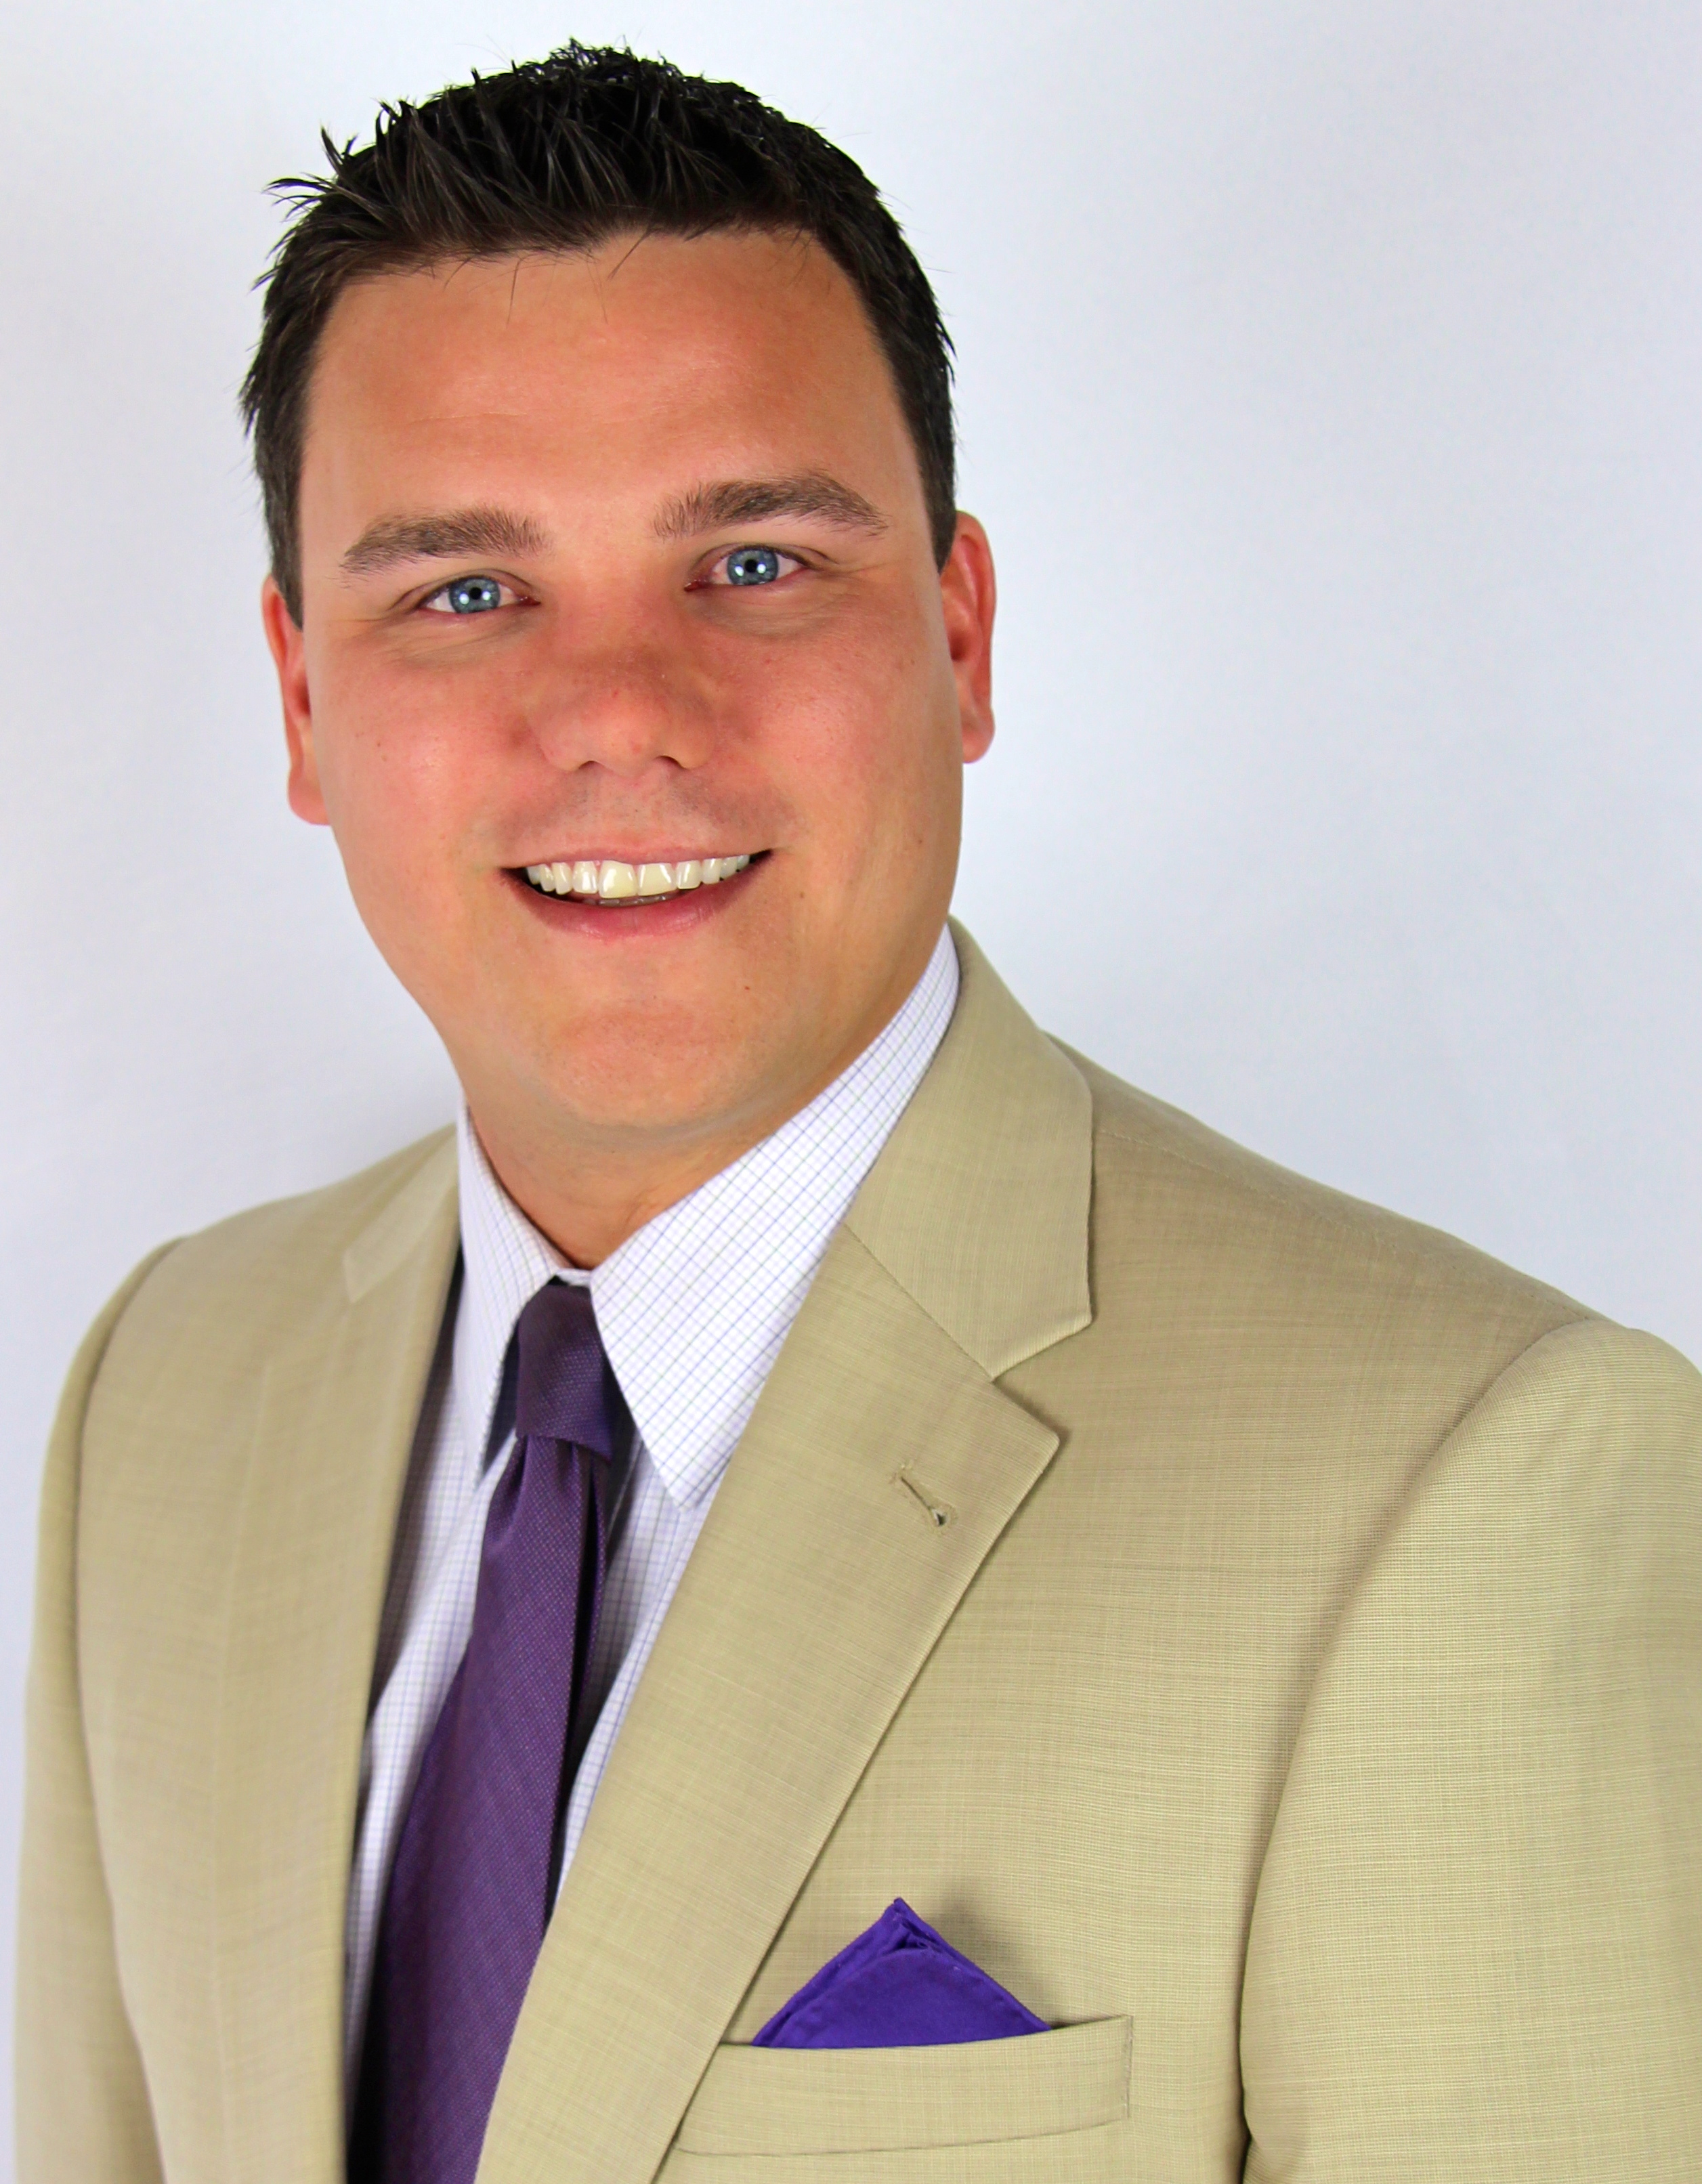 Justin Blews, financial advisor Sunny Isles Beach FL